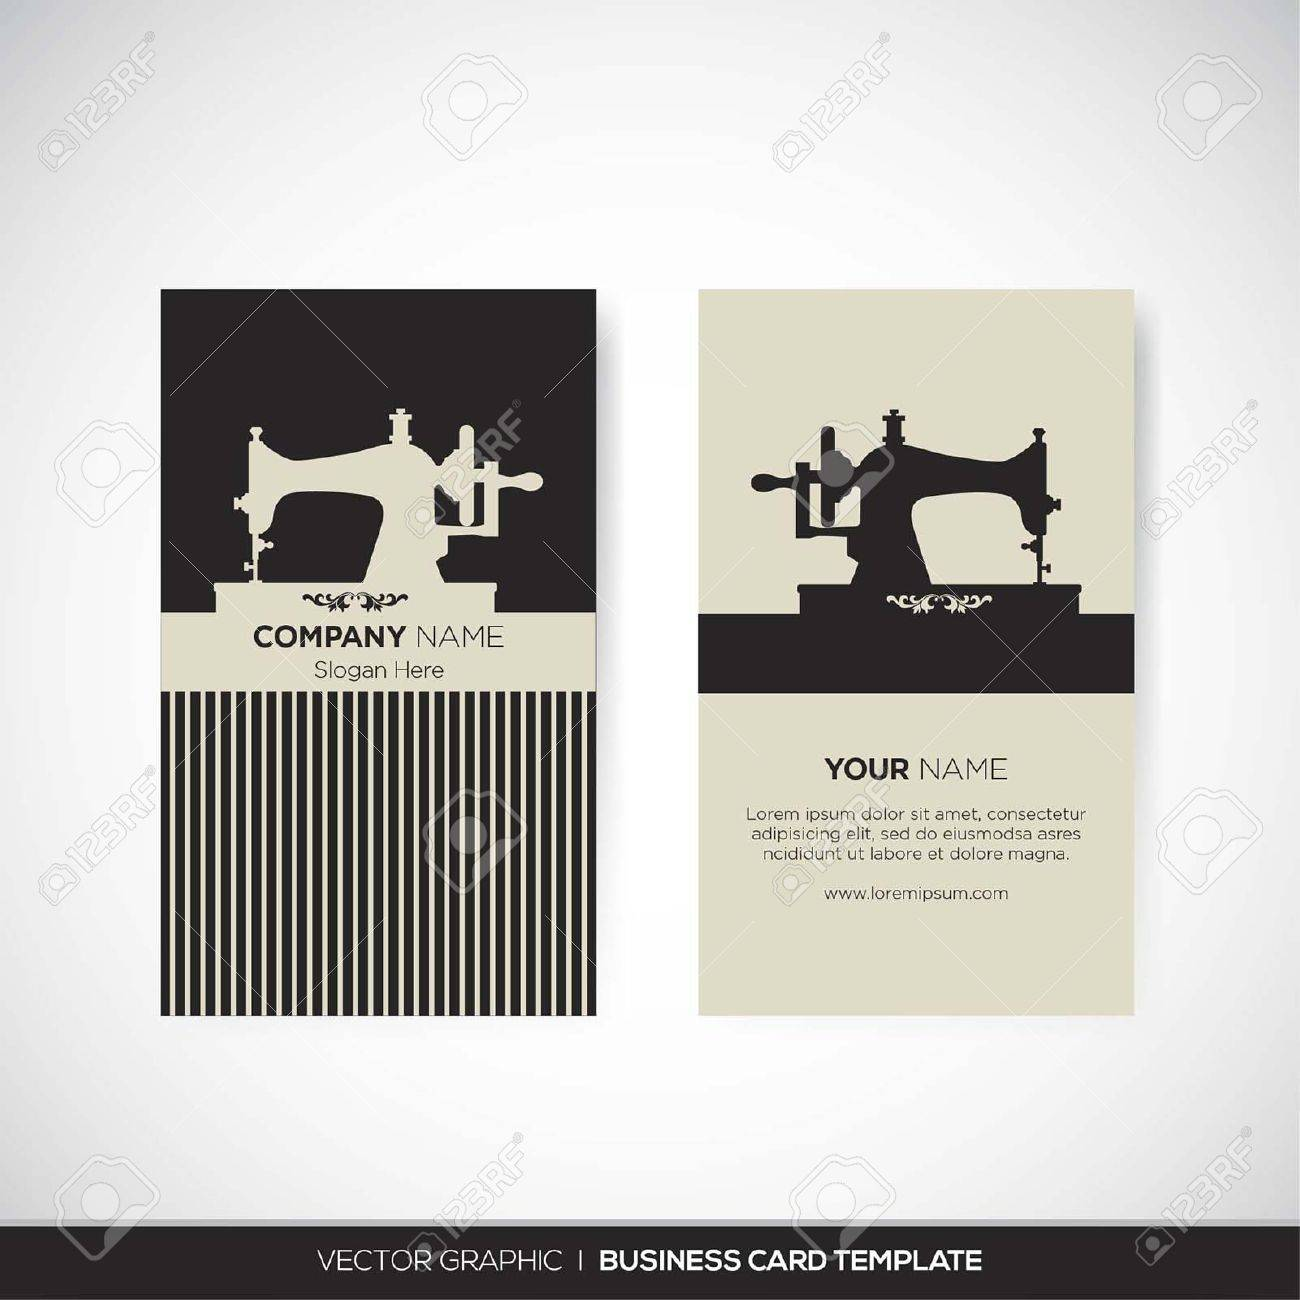 Business Card Template Royalty Free Cliparts, Vectors, And Stock ...